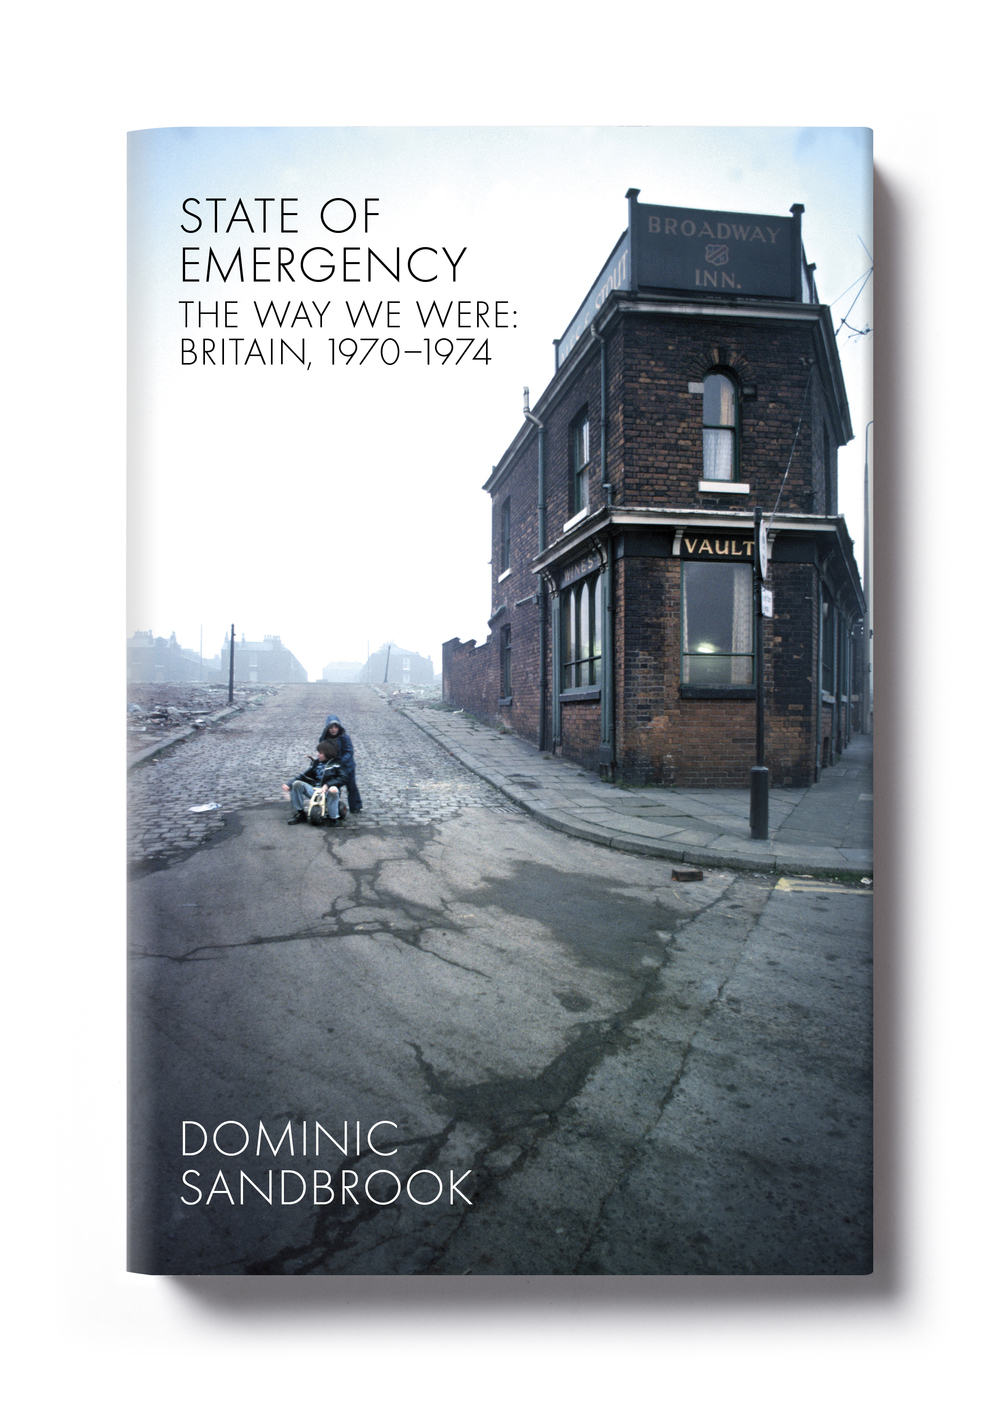 State of Emergency by Domonic Sandbrook - Design: Jim Stoddart Photograph: John Bulmer